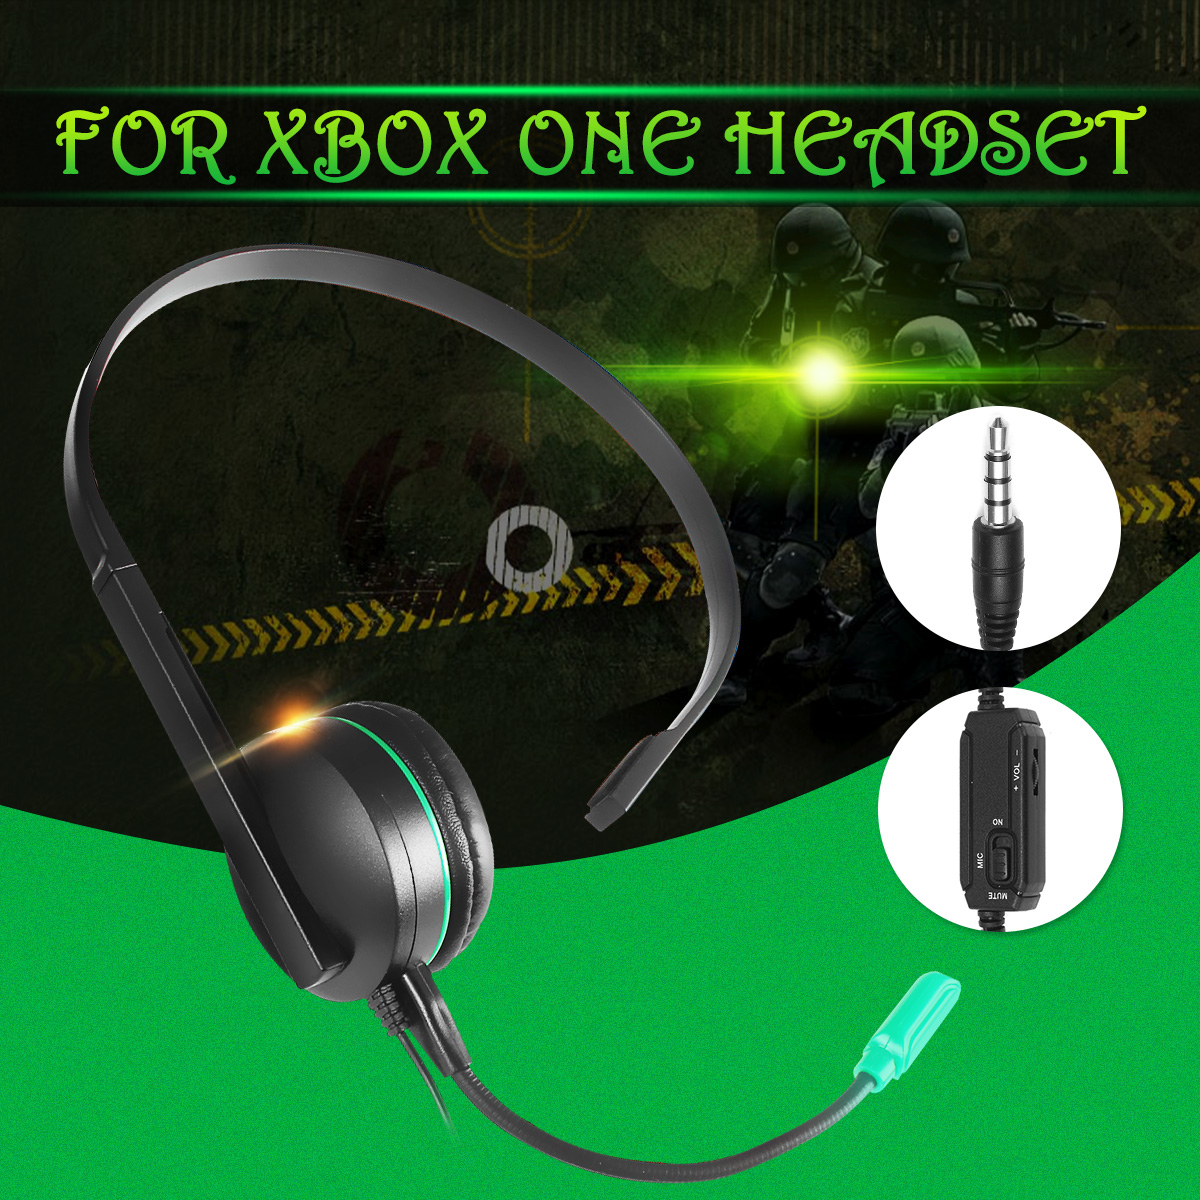 Wired Chat Gaming Single Side Headset Headphones Earphone Gaming Noise Cancelling With Microphone For PS4 For Xbox ONE unilateral earphone headset w volume control microphone for xbox 360 black 120cm cable